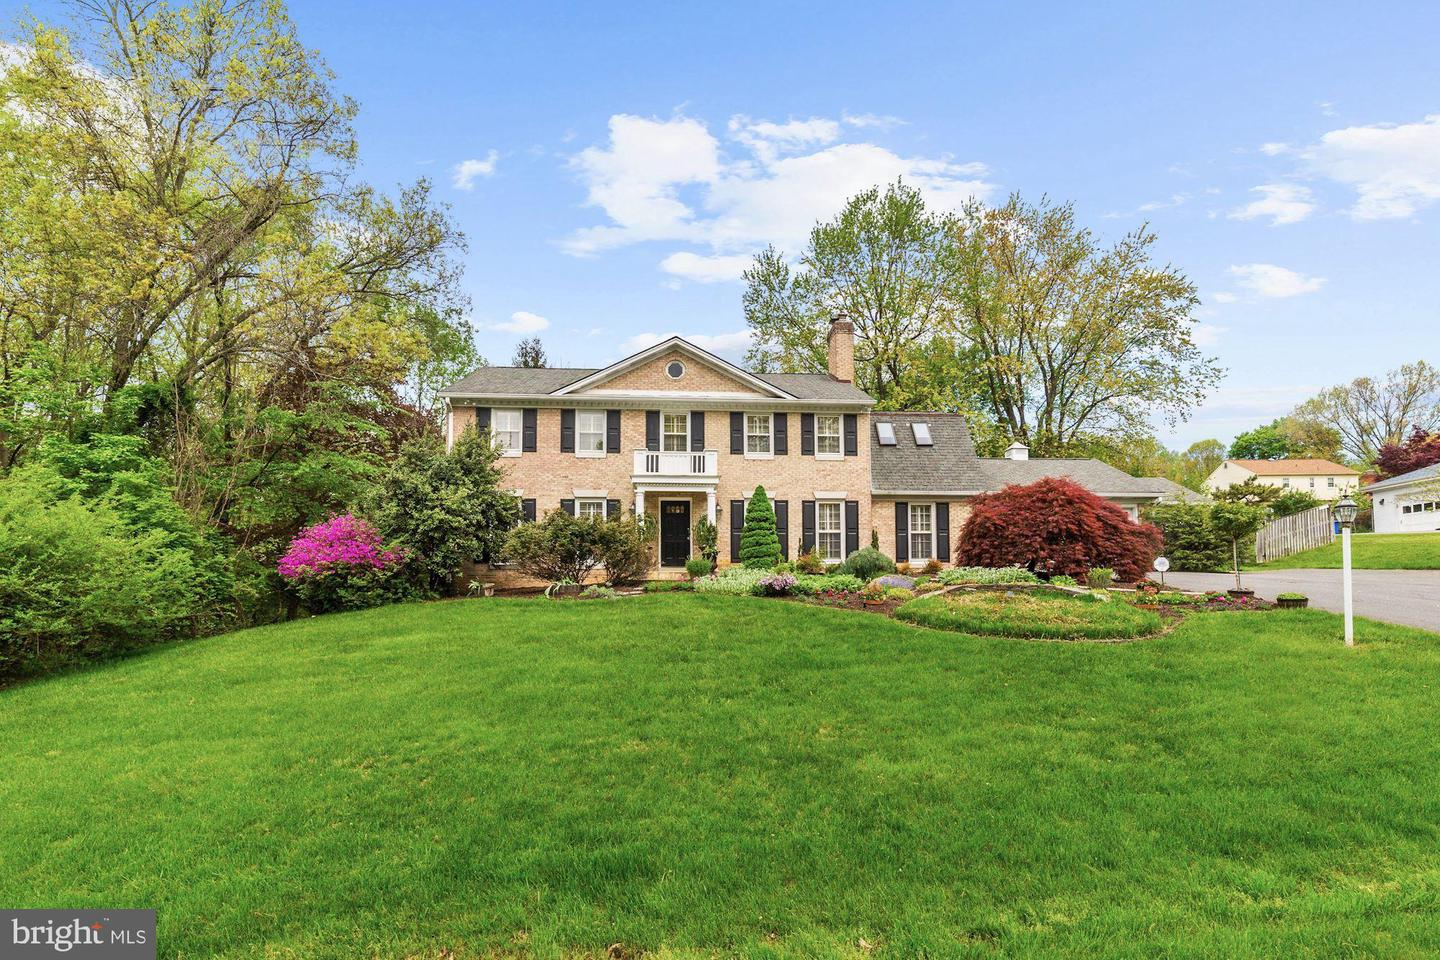 9017 MARSEILLE DRIVE, POTOMAC, Maryland